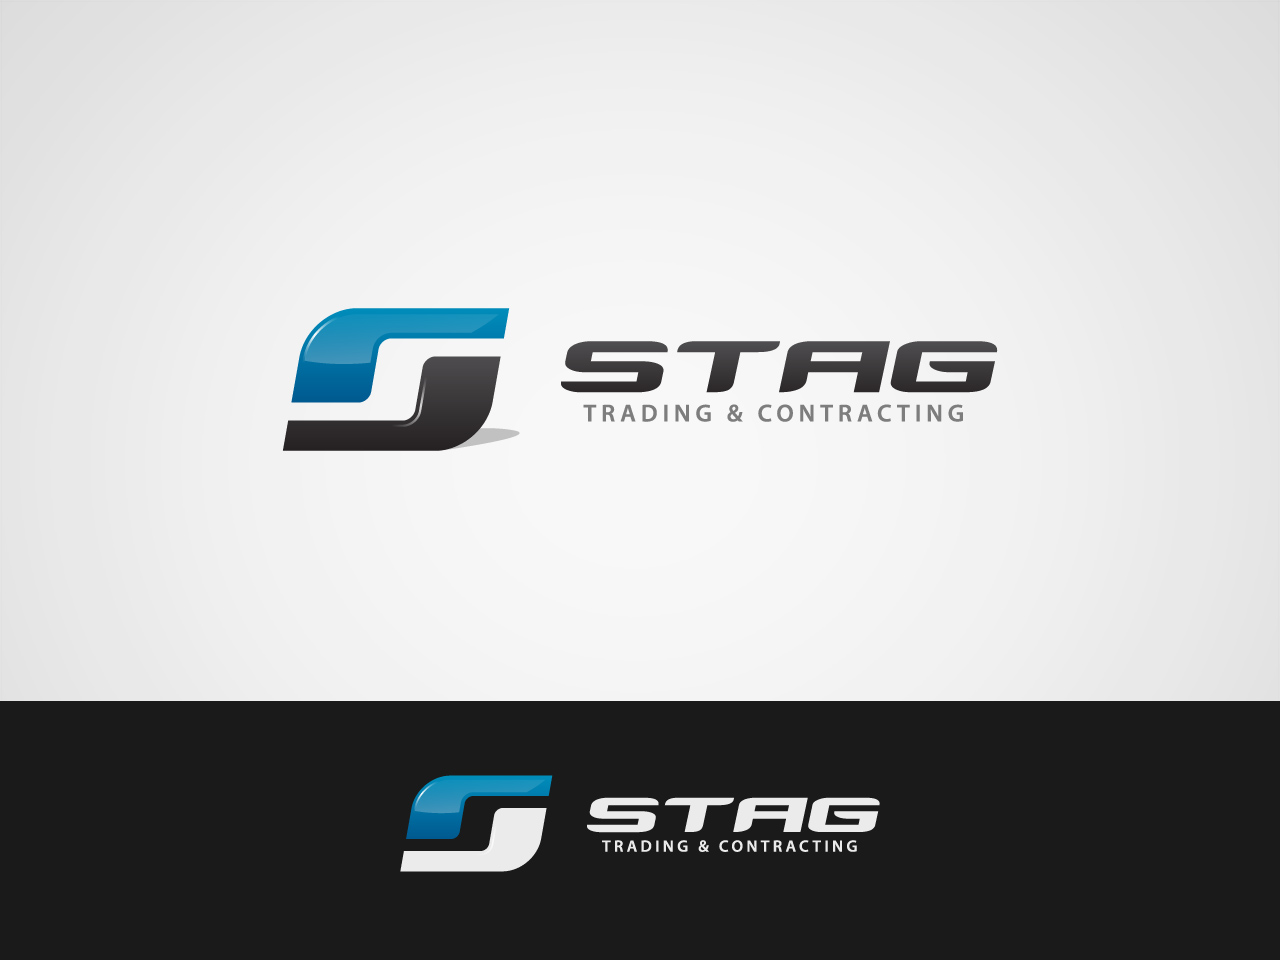 Logo Design by jpbituin - Entry No. 222 in the Logo Design Contest Captivating Logo Design for STAG Trading & Contracting.